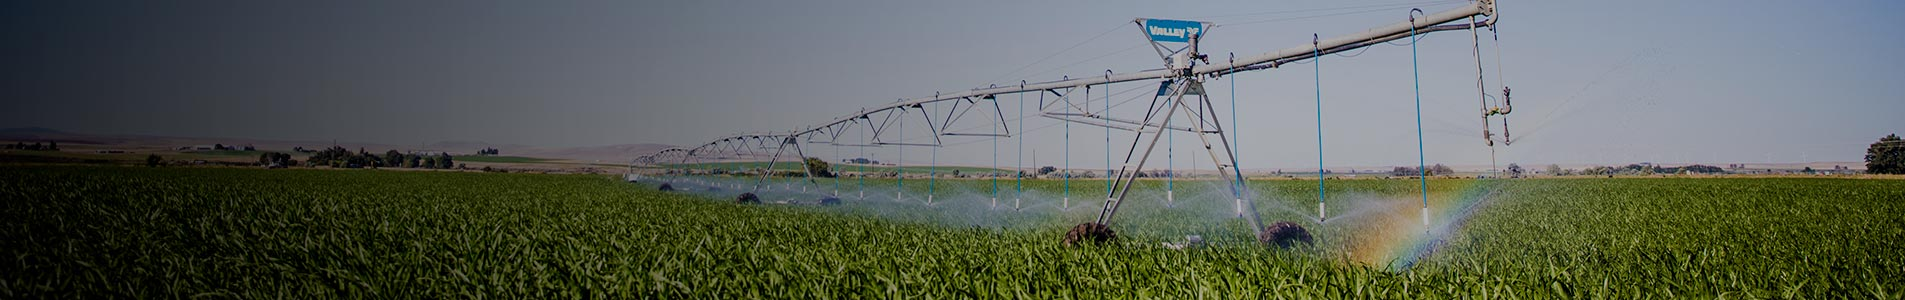 valley variable rate irrigation zone control - water application management solution